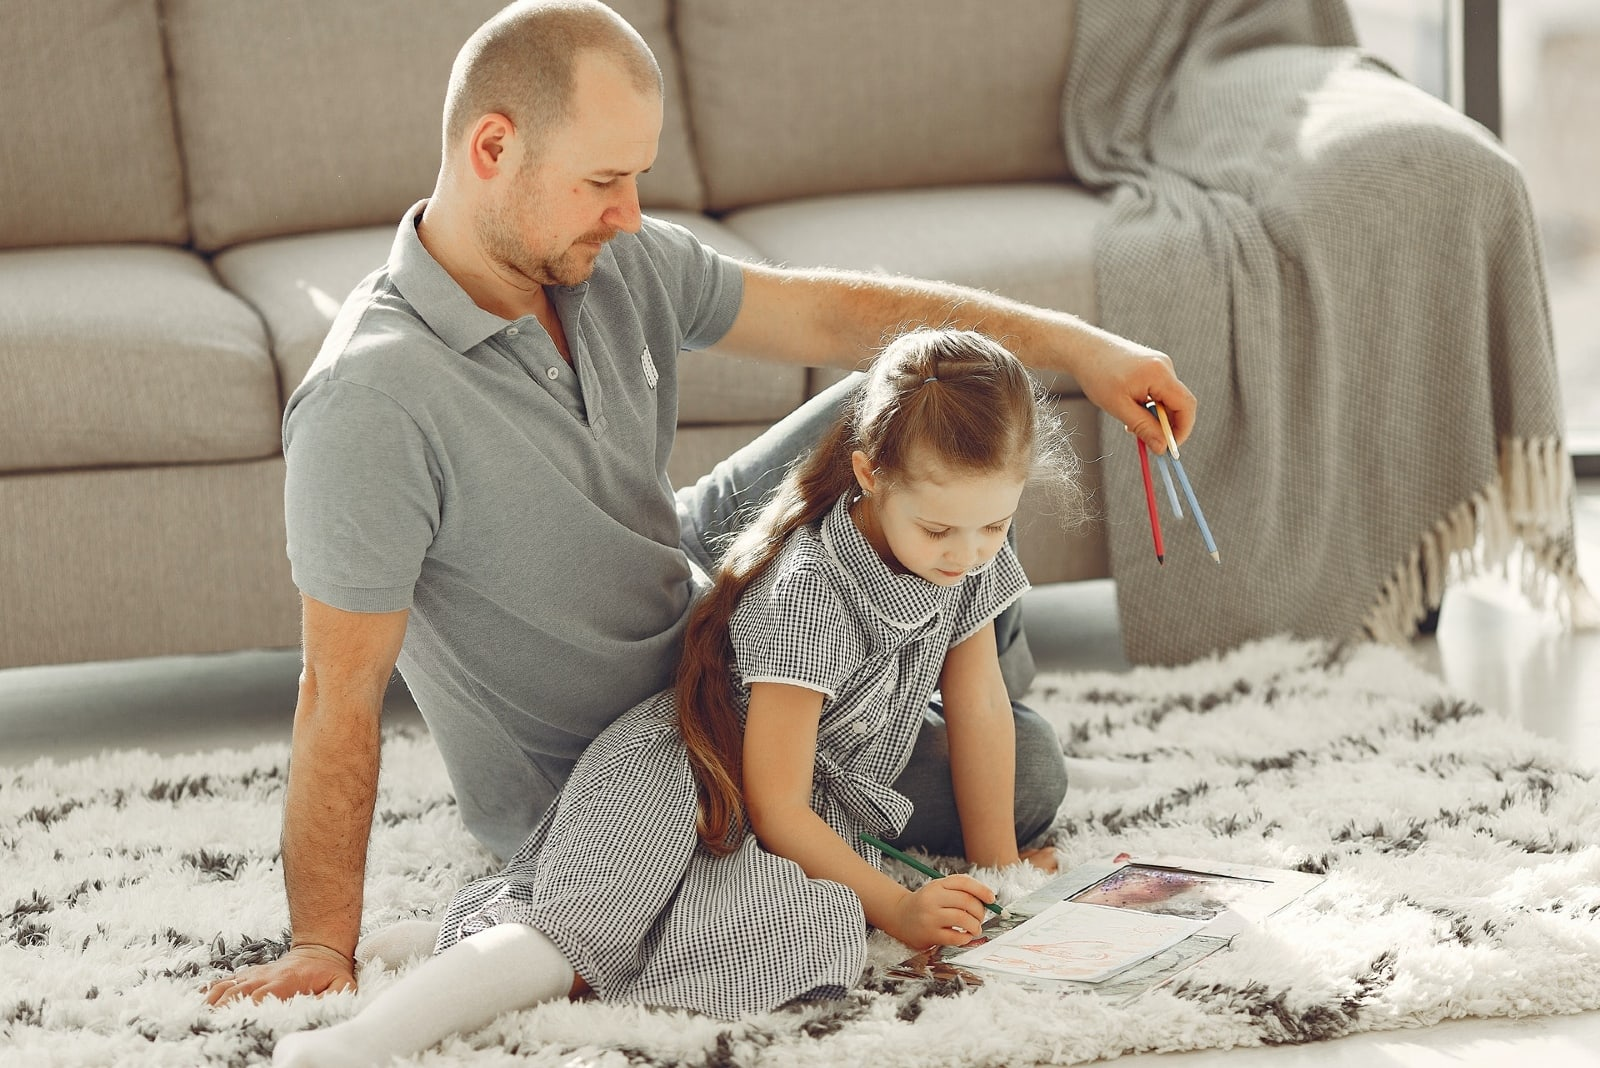 father holding colored pencils while sitting near daughter on carpet